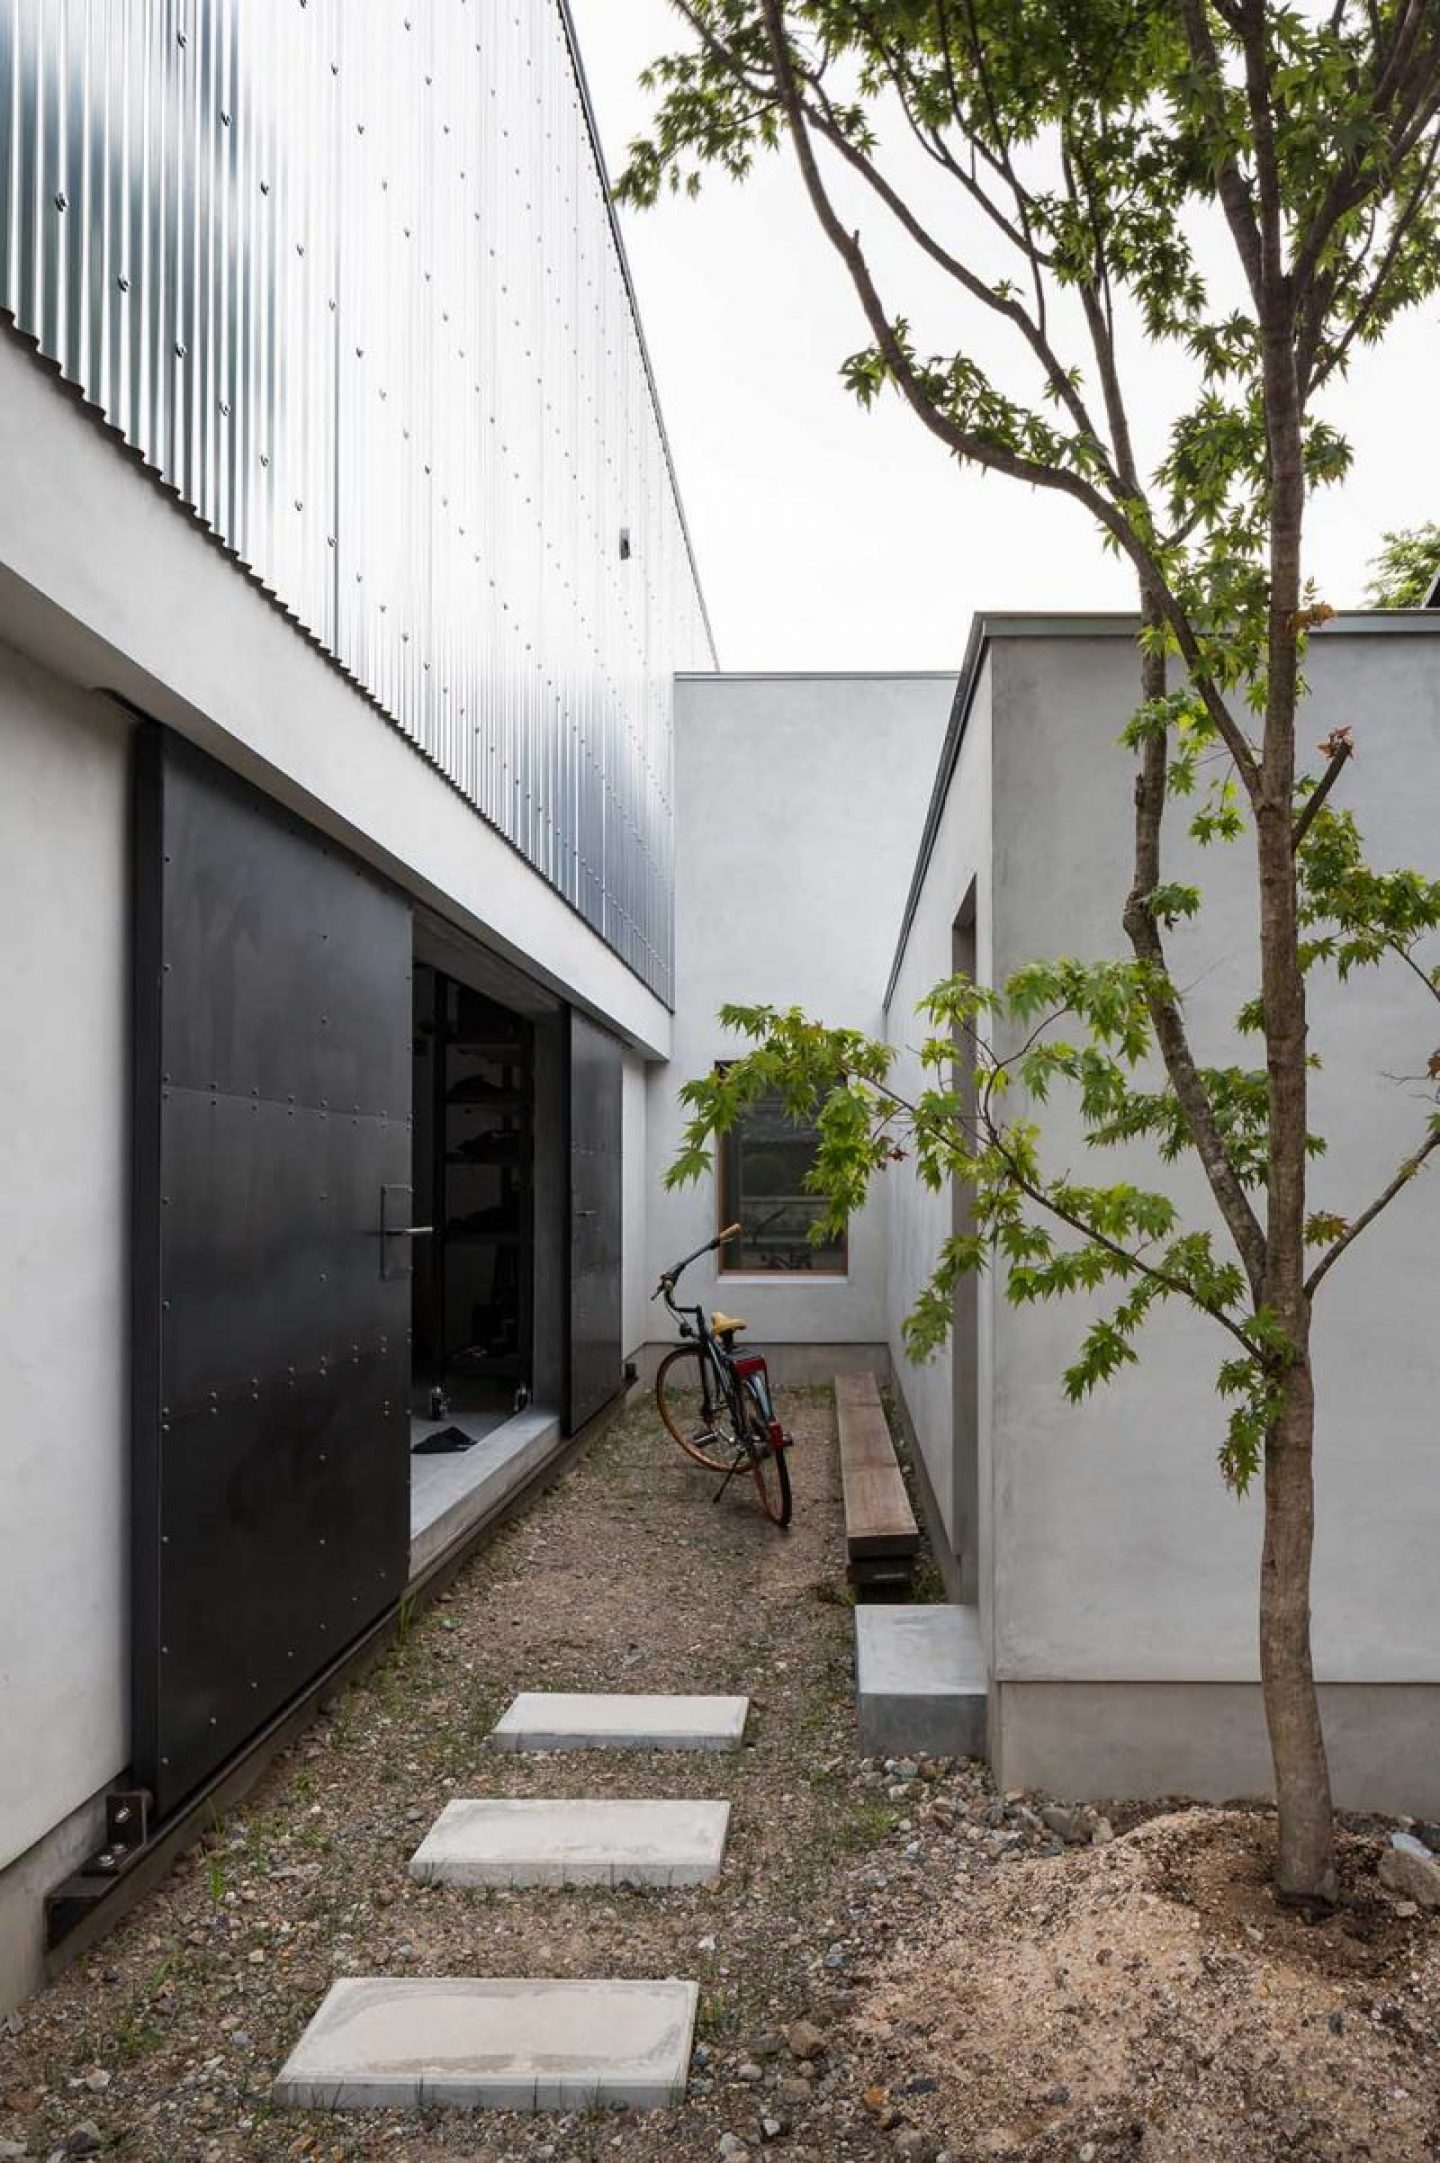 iGNANT_Architecture_House_For_A_Photographer_FORM_Kouichi_Kimura_Architects_5